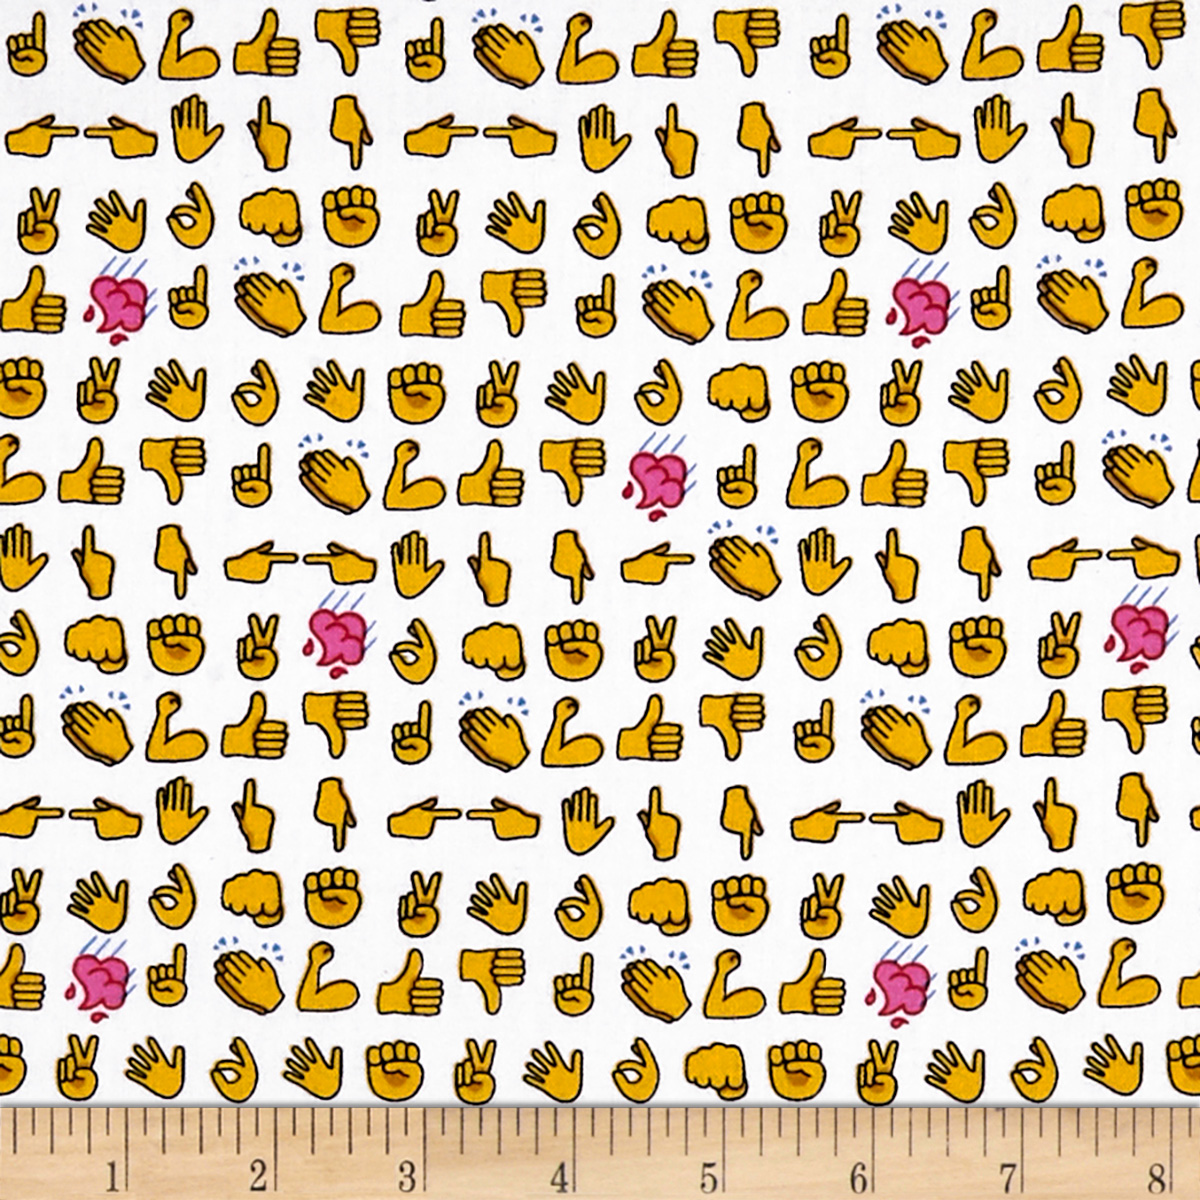 Designed by MY KT for Windham Fabrics this cotton print features the 21st century strong arm and hand emojis with a pink rain cloud that is perfect for quilting apparel and home decor accents. Colors include white yellow red pink blue and black.